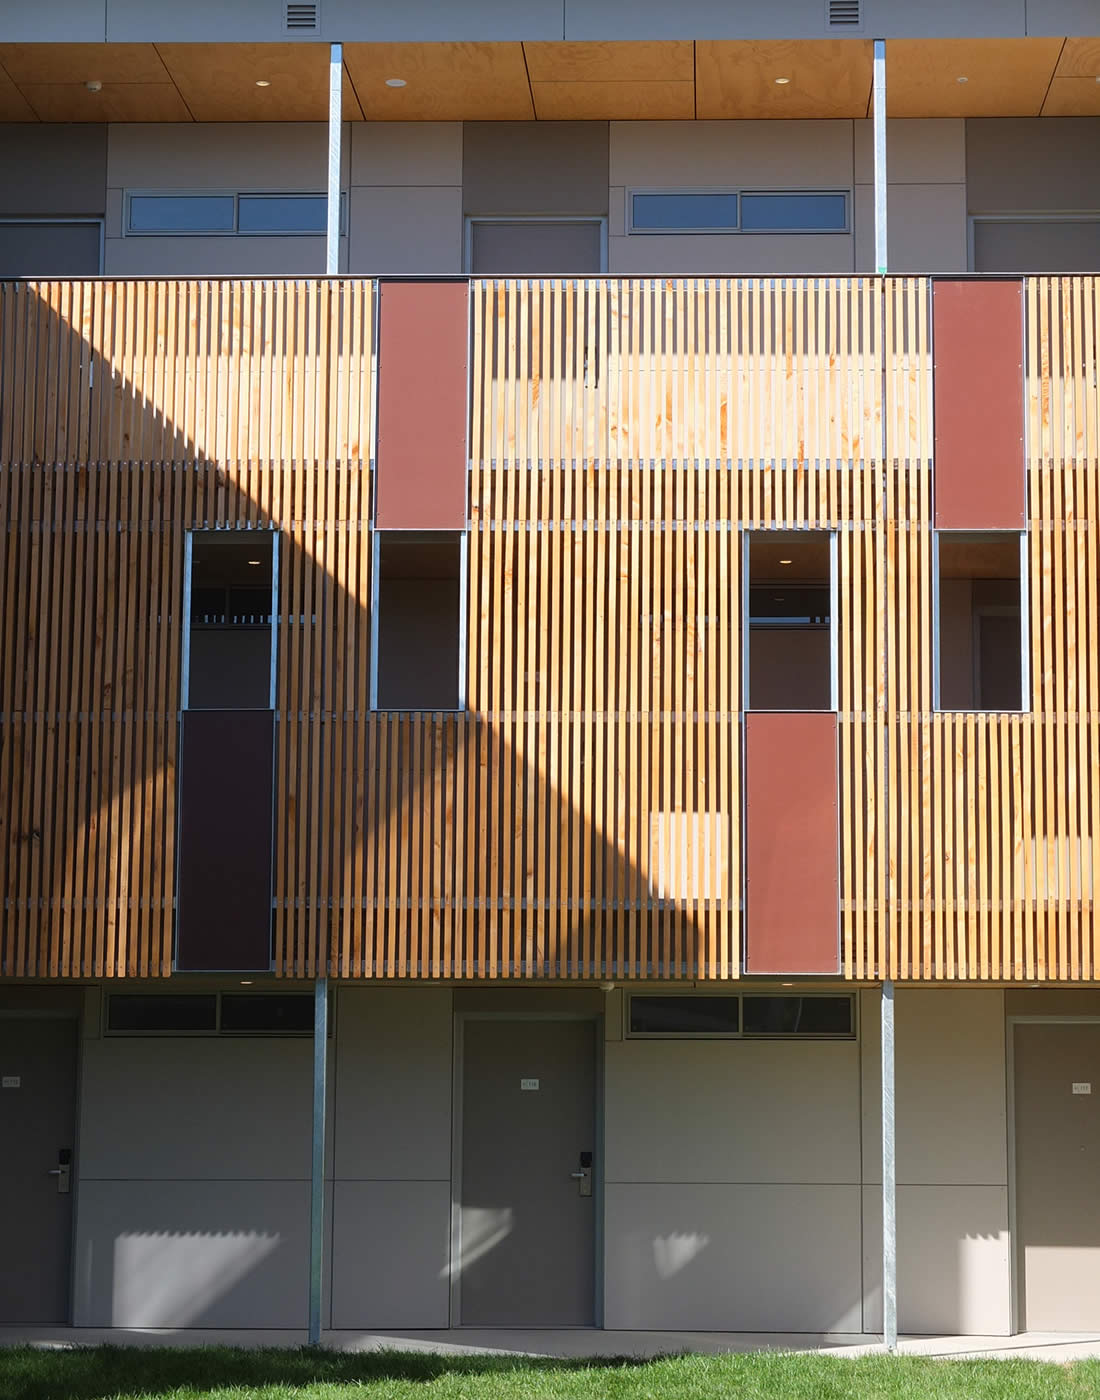 UTAS Newnham Student Residences, Tasmania: Rough sawn unfinished macrocarpa timber screens moderate the weather to open walkways and support crime prevention through environmental design (CPTED) principles. Photo by Morrison & Breytenbach Architects.